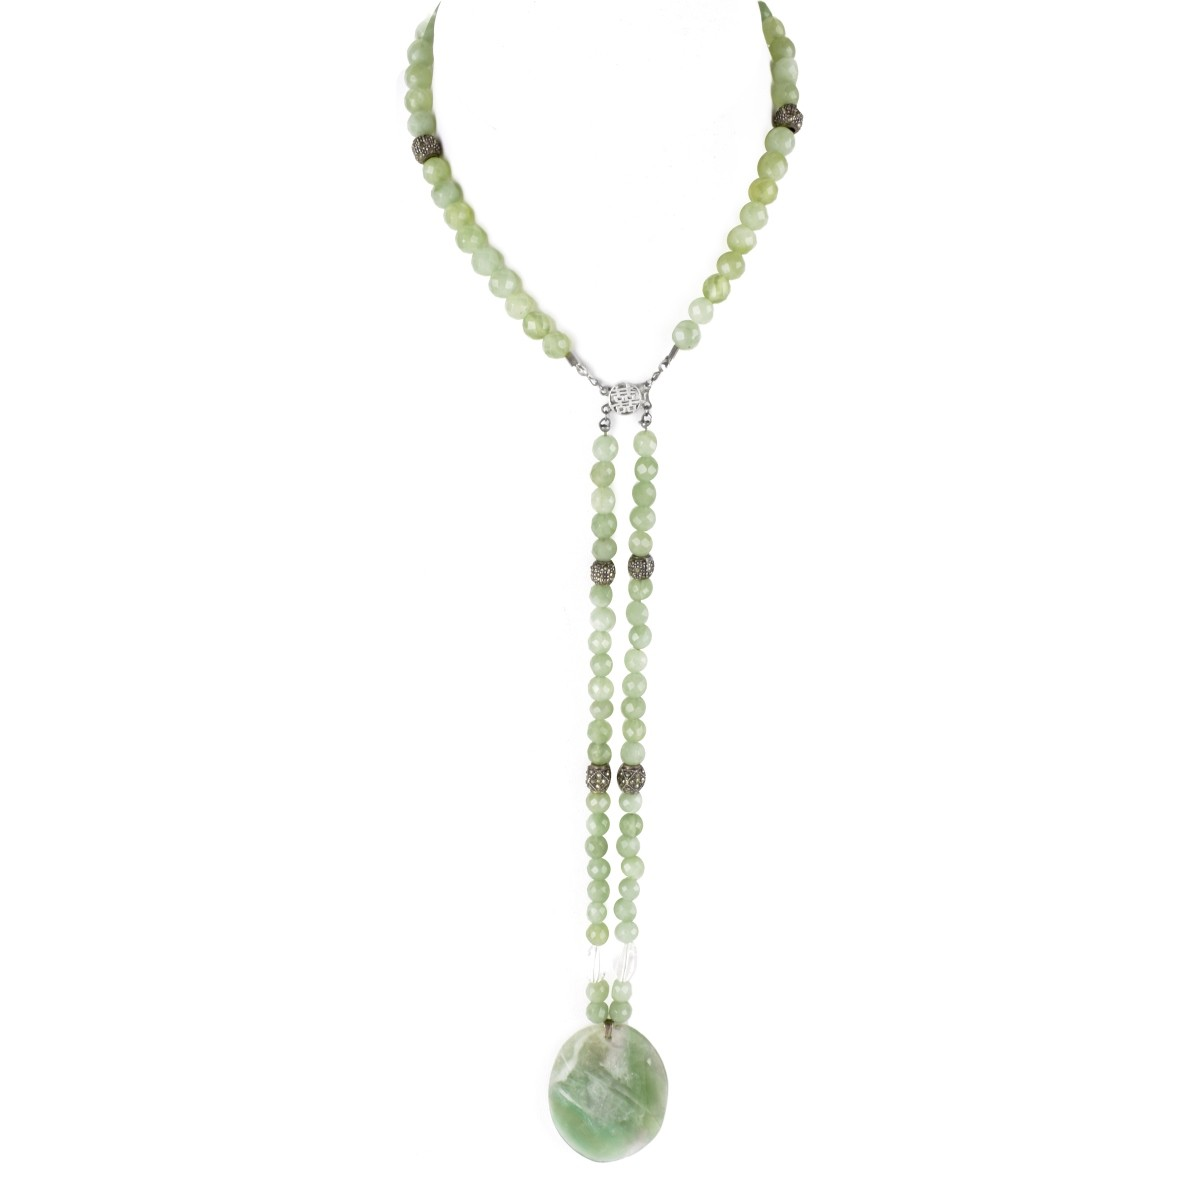 Jade and Sterling Necklace